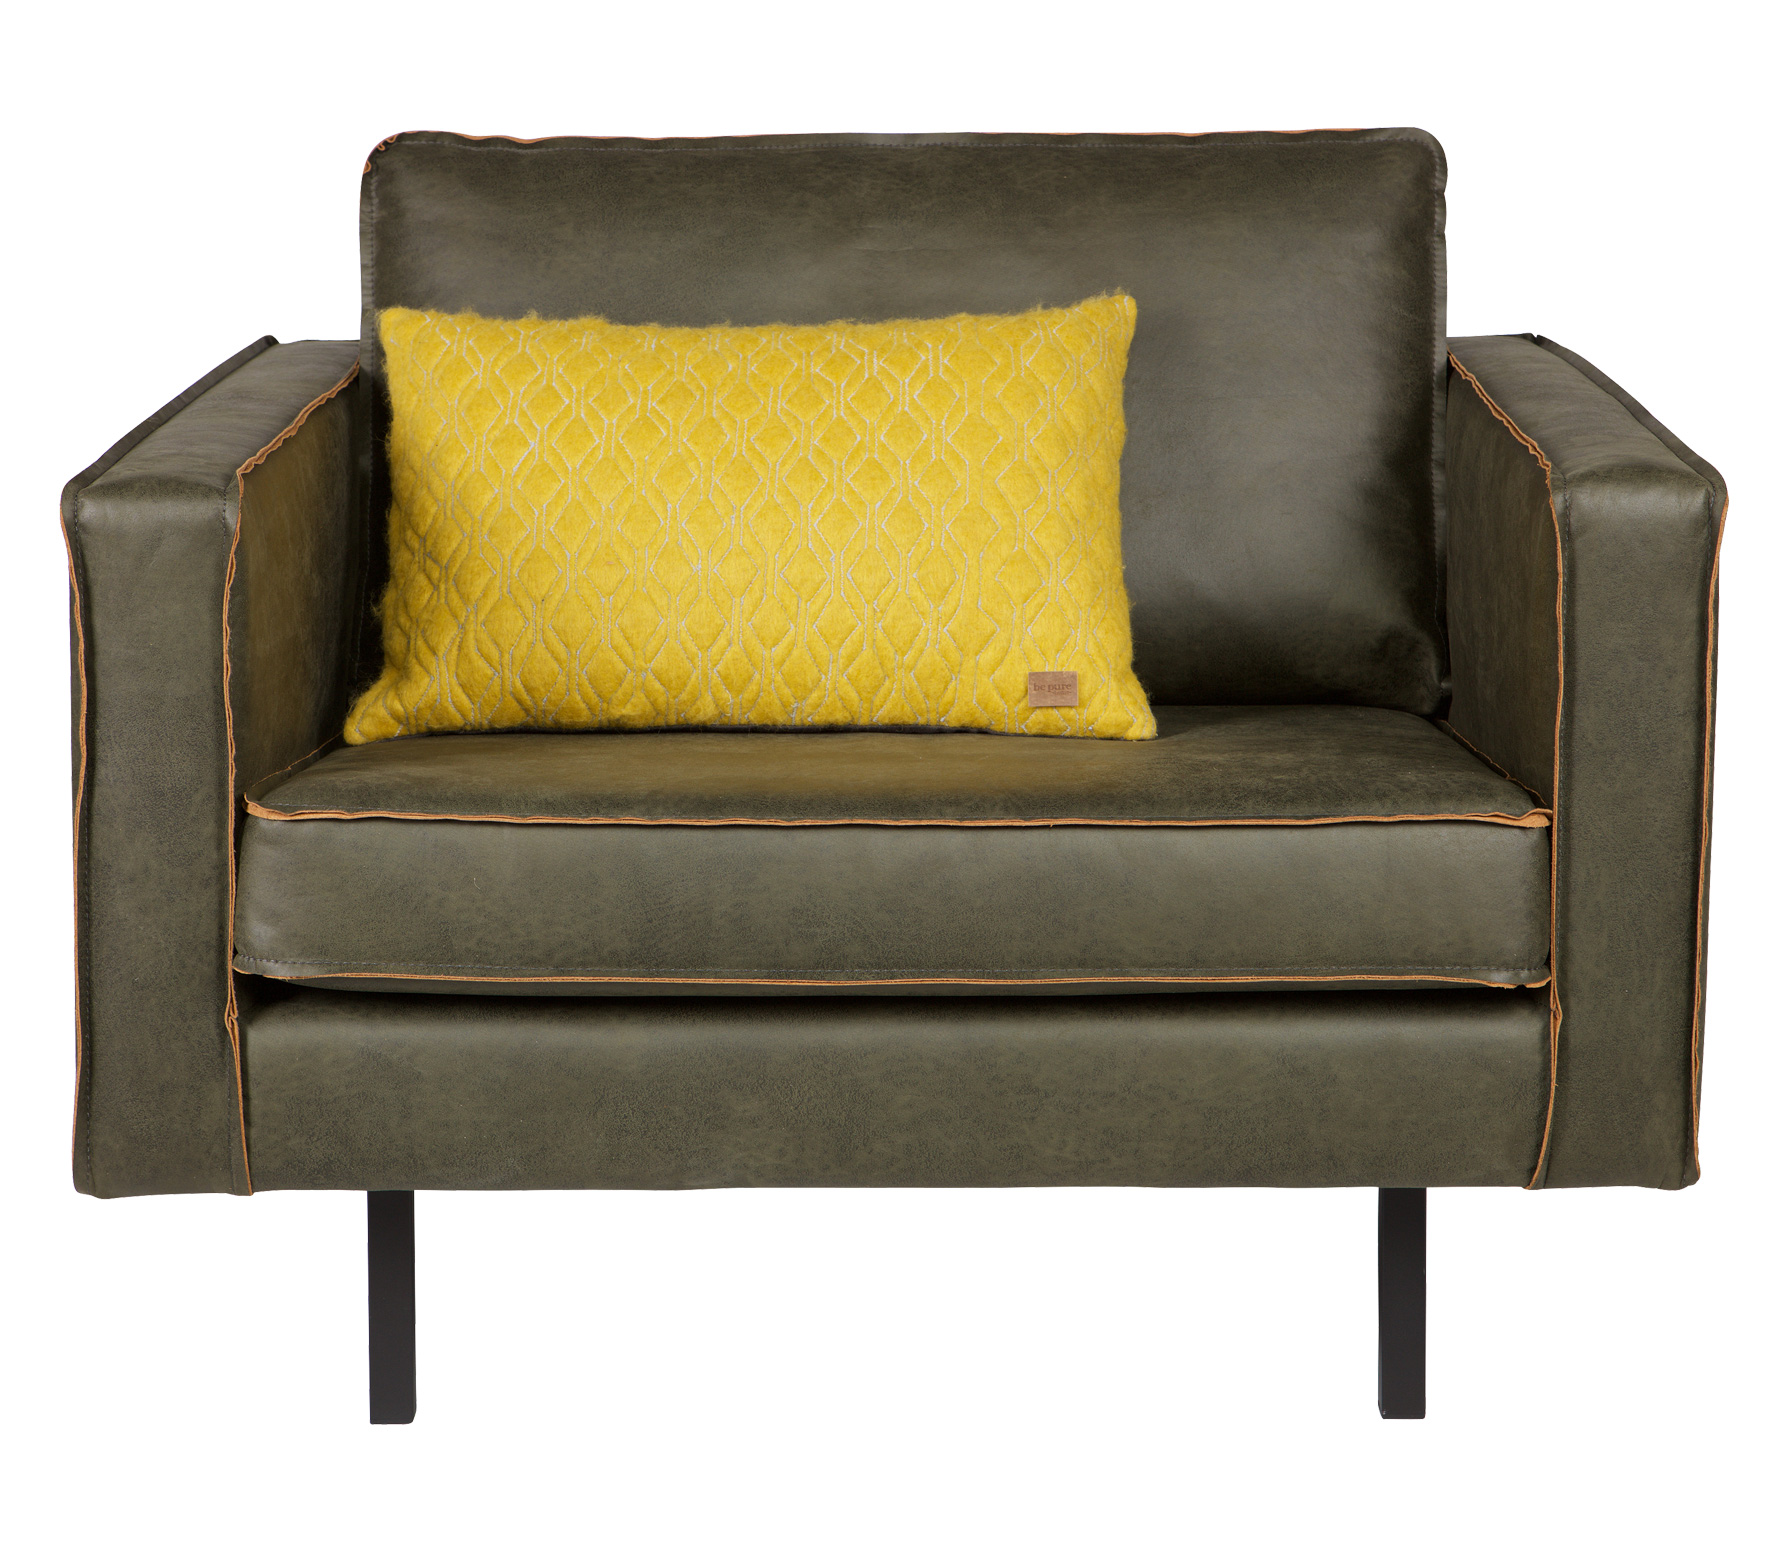 BePureHome Rodeo loveseat 1,5-zits fauteuil recycle leer army